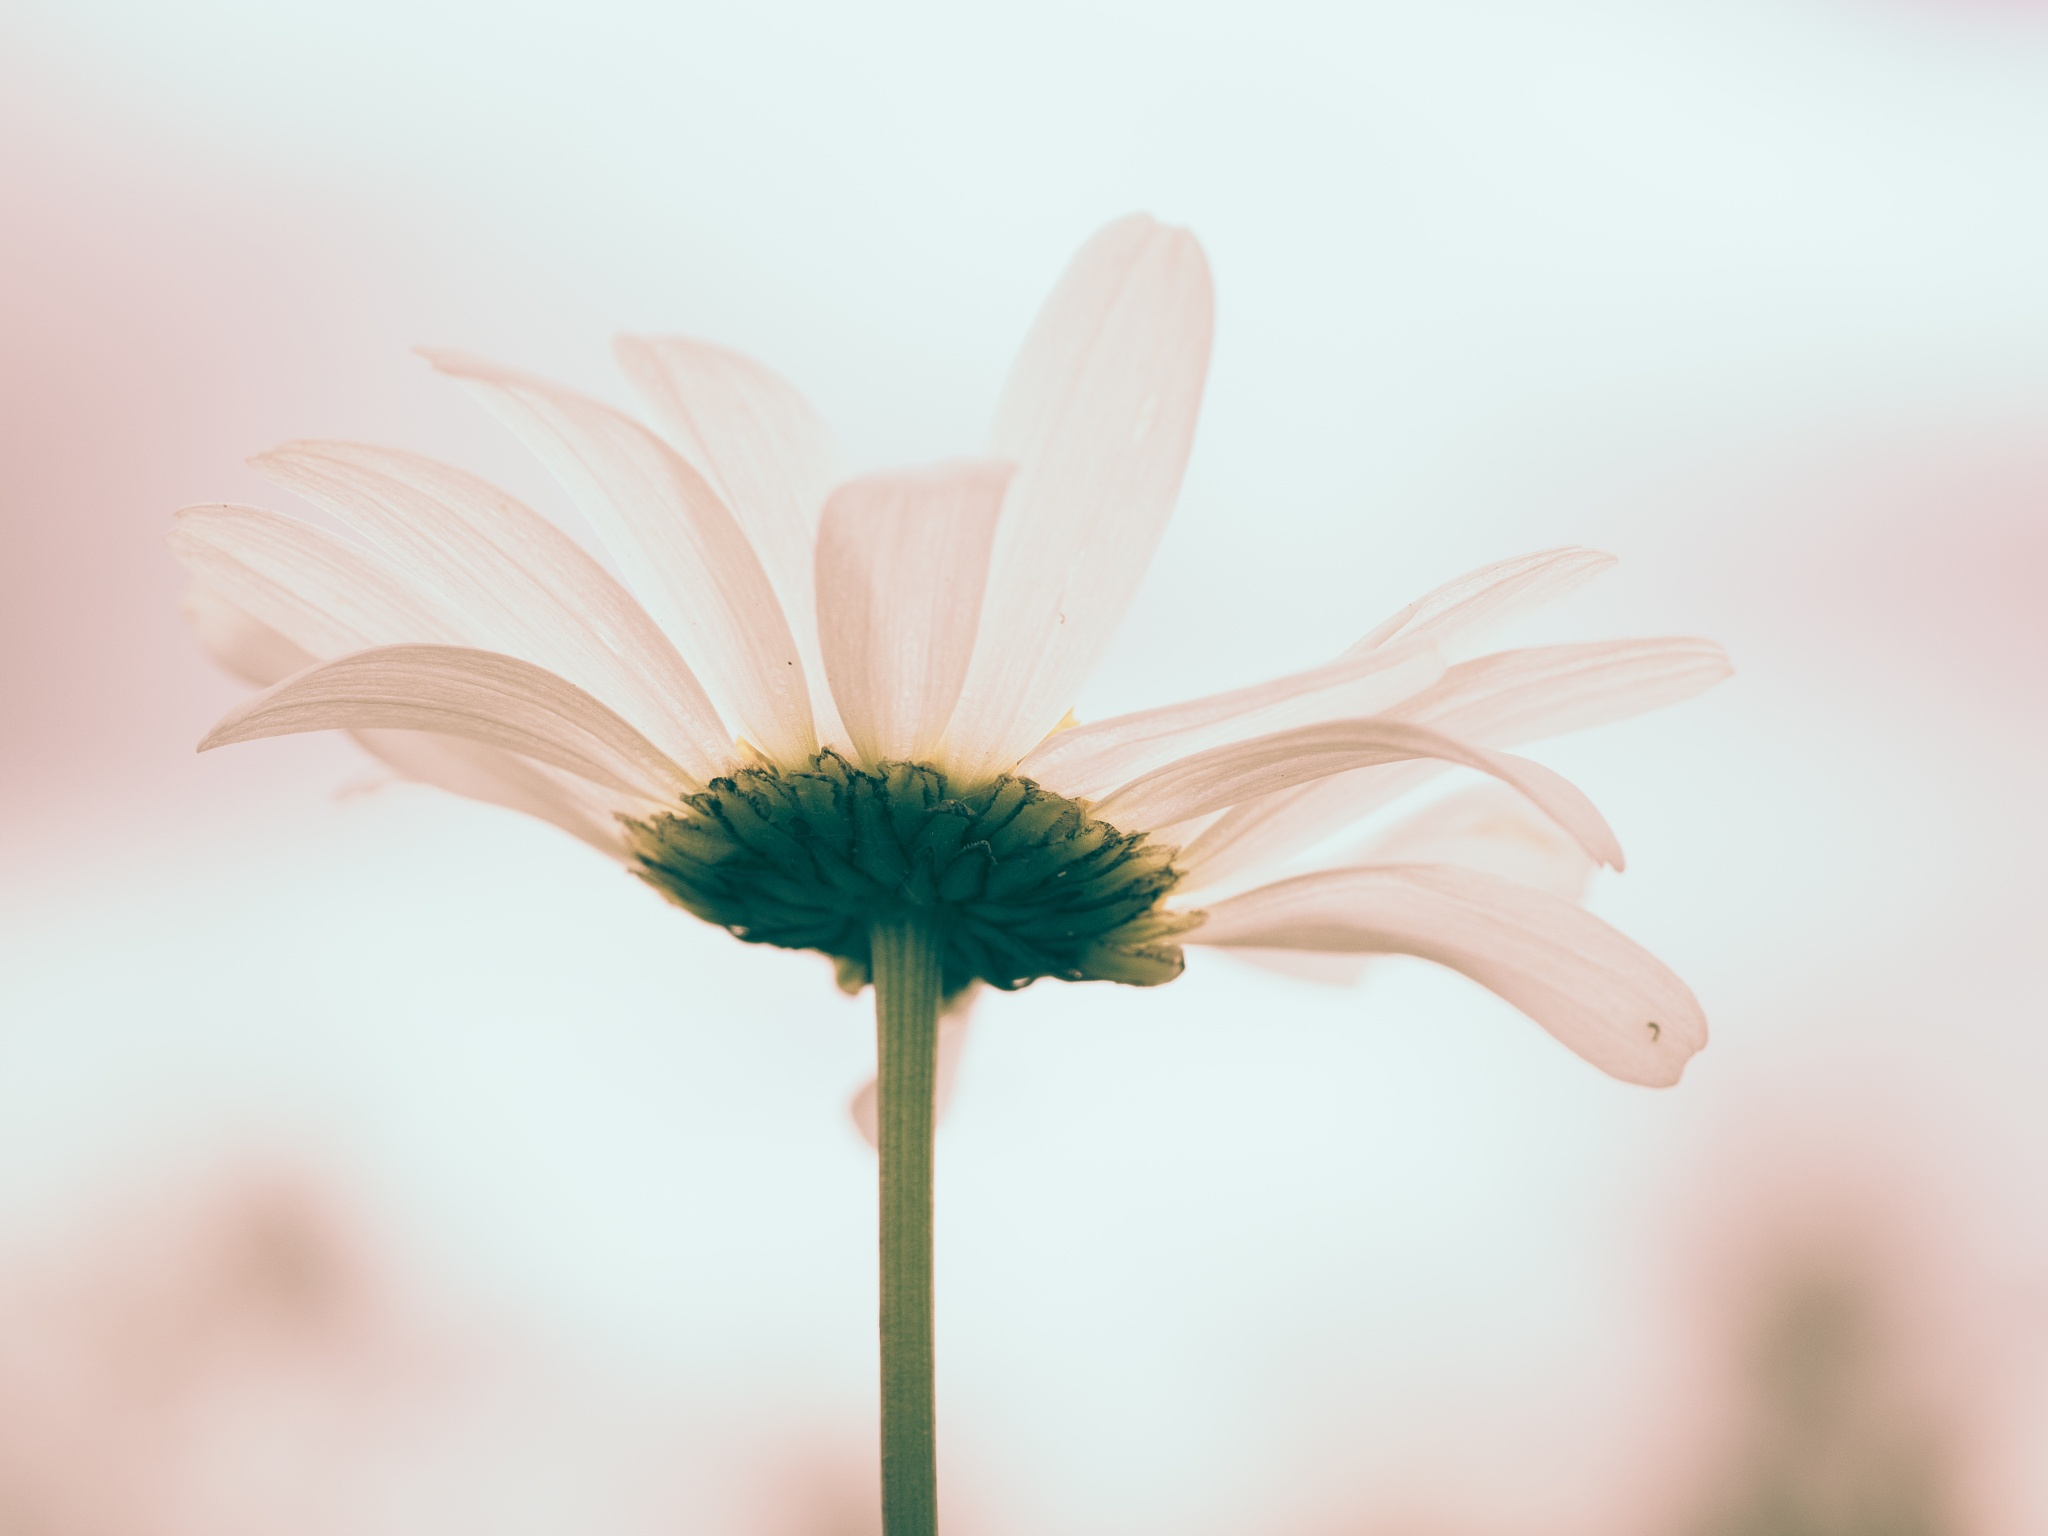 Daisy in pink by Sarah Walters